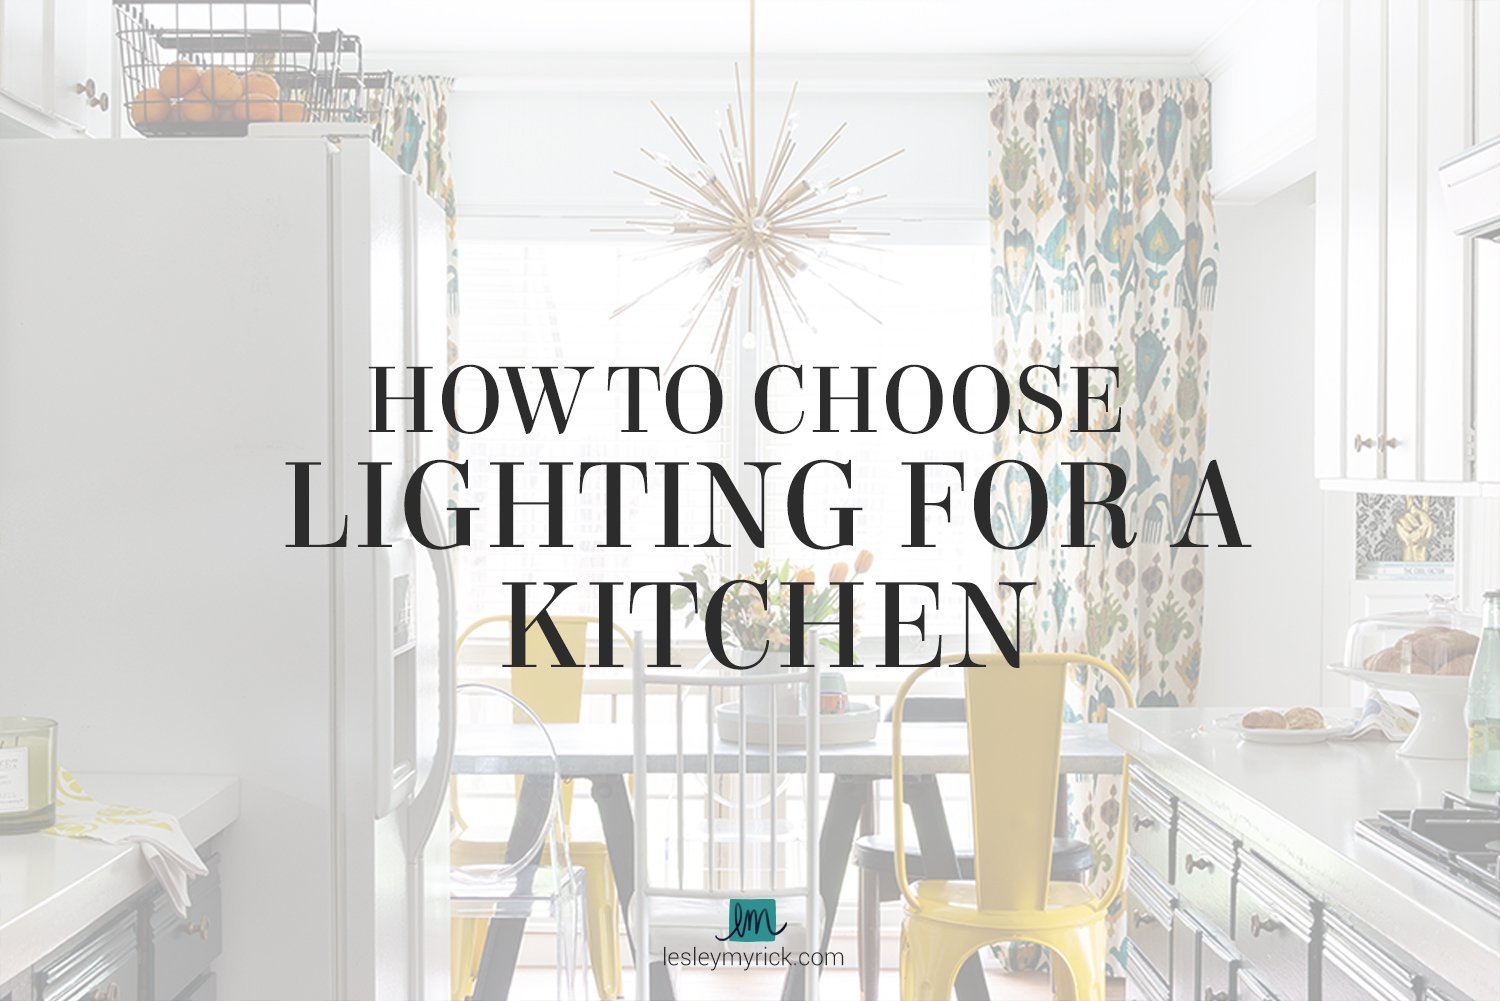 How to Choose Lighting for a Kitchen